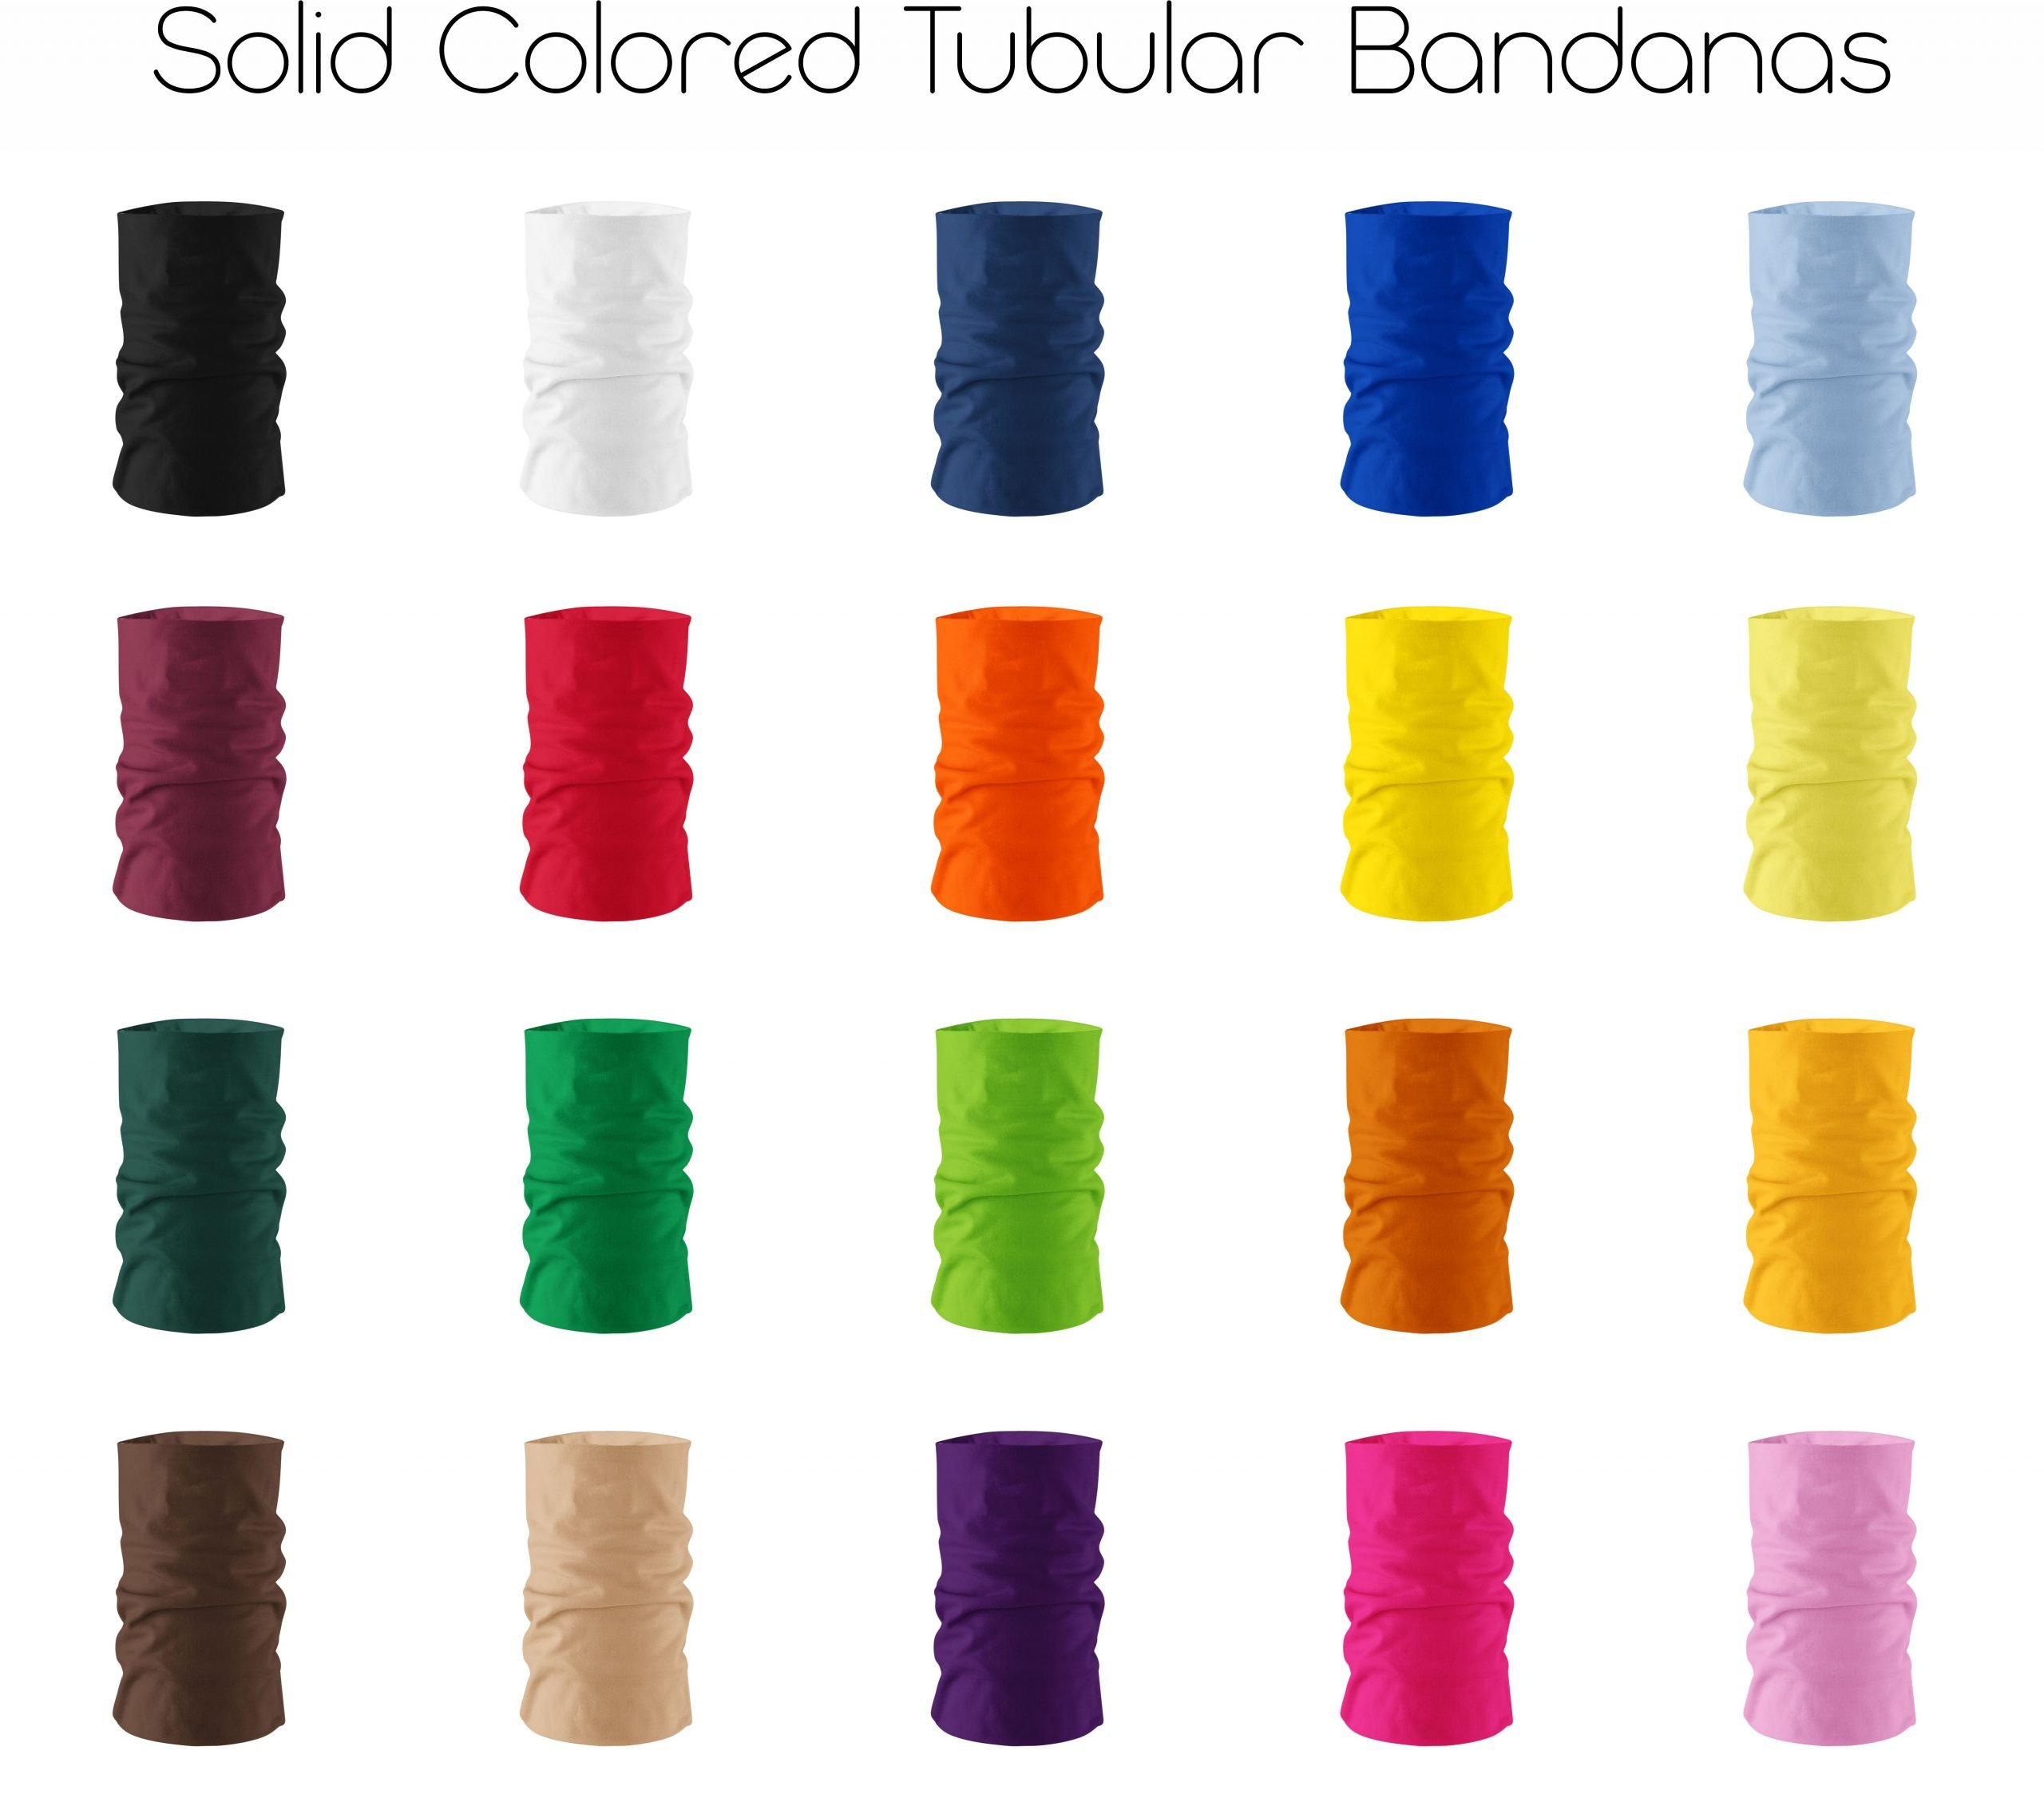 An image of solid colored tubular bandanas